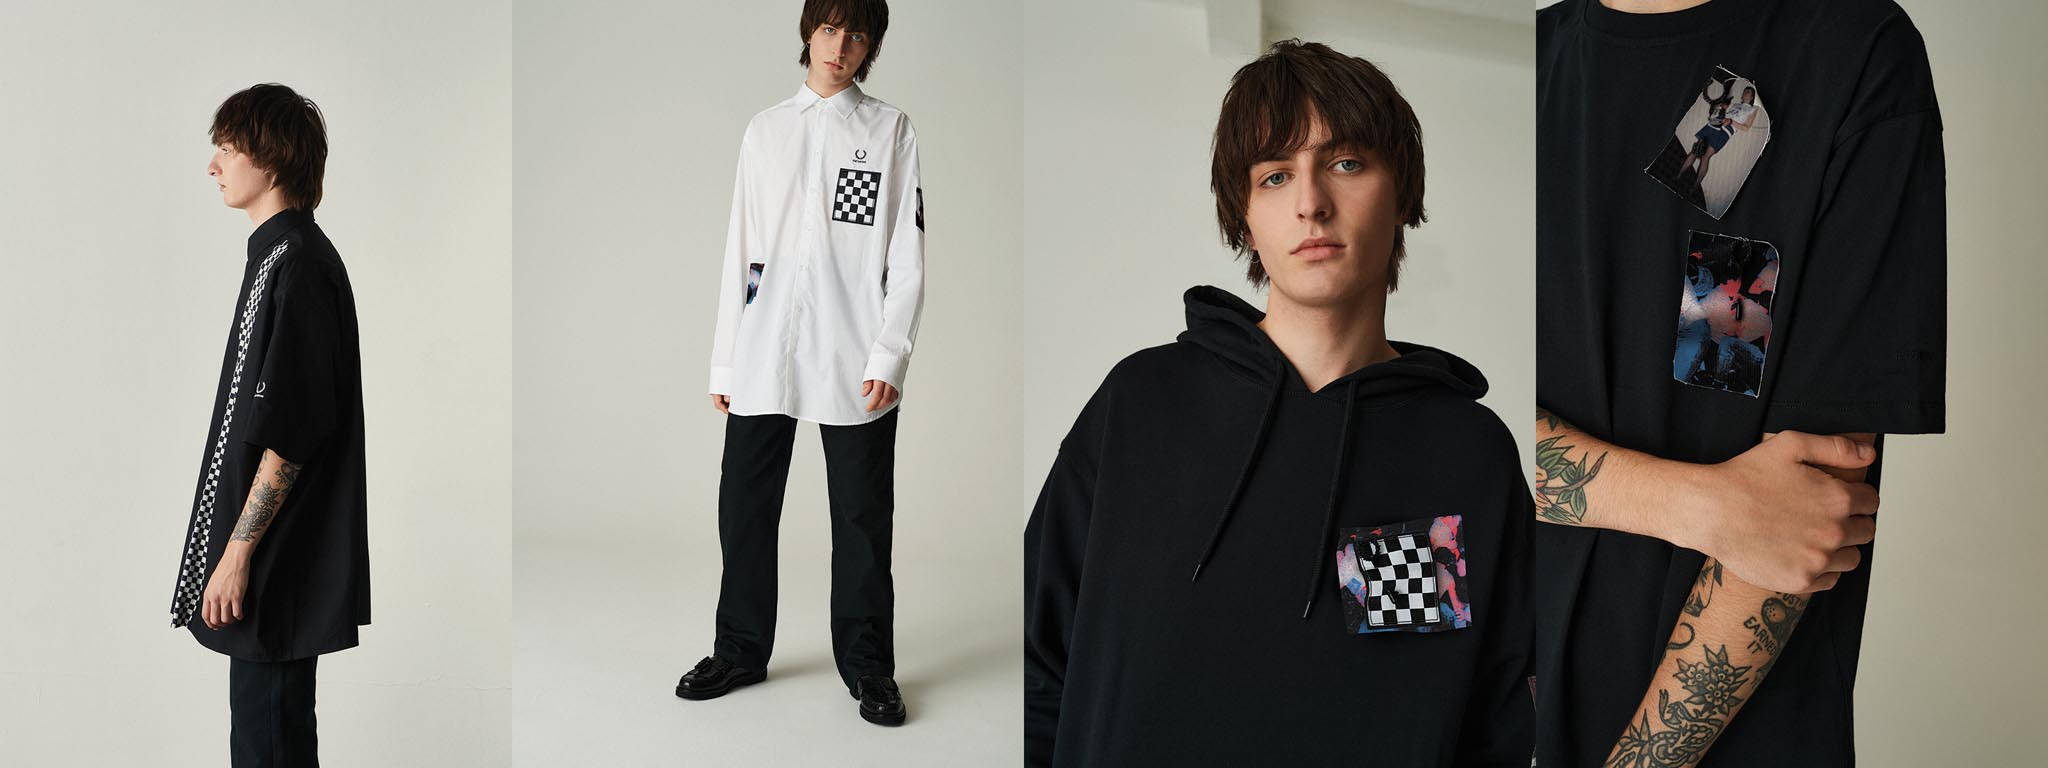 Fred Perry x Raf Simons Spring/Summer Collection - 1